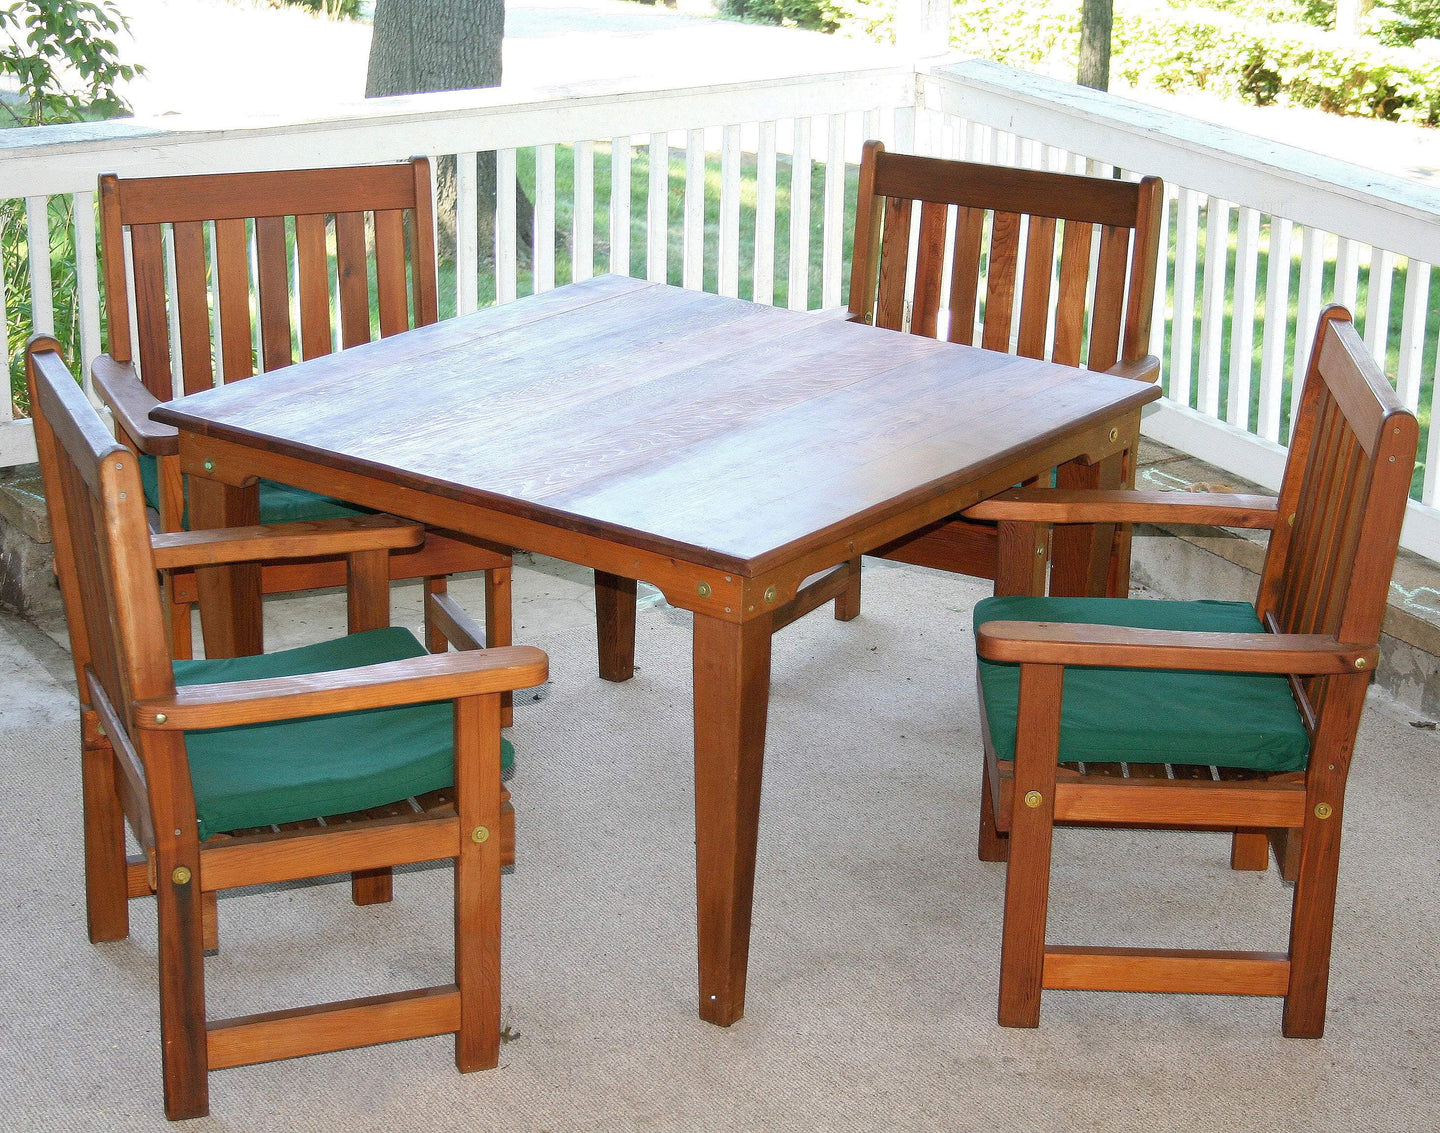 Creekvine Designs Patio Furniture 36